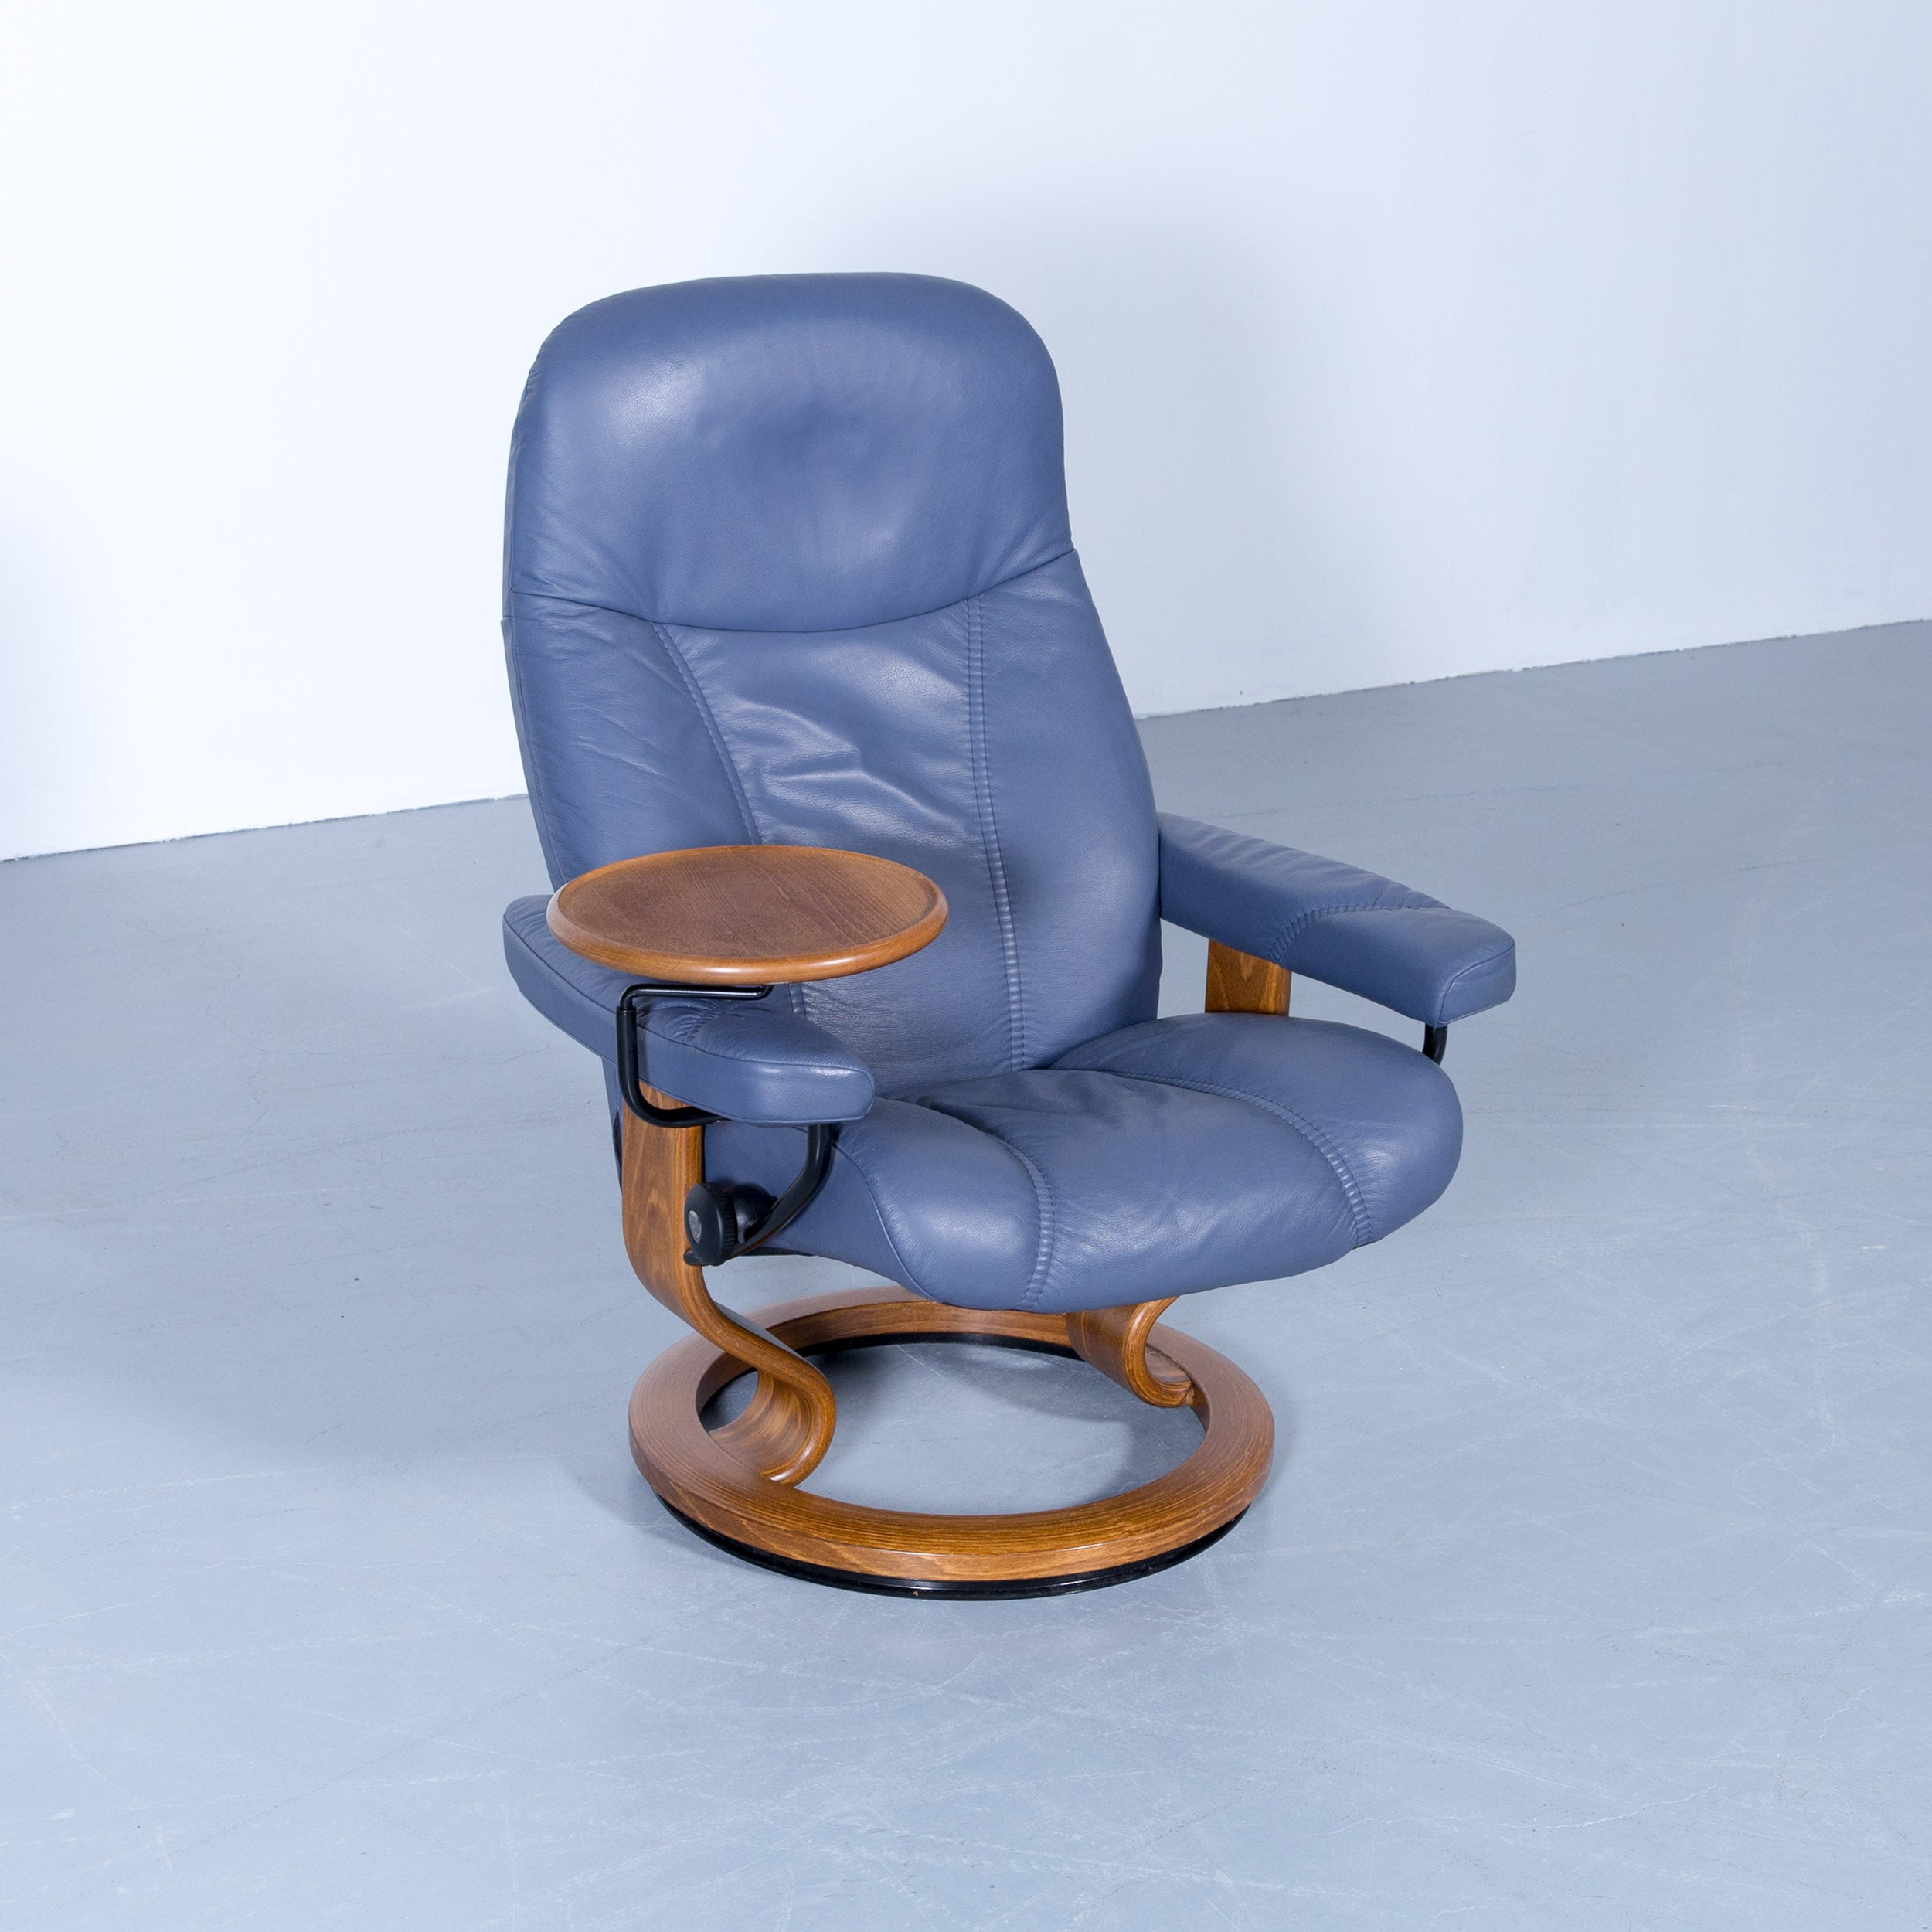 Stressless Consul Preisvergleich Stressless Consul Relax Armchair Light Blue Leather Relax Function Tv Recliner